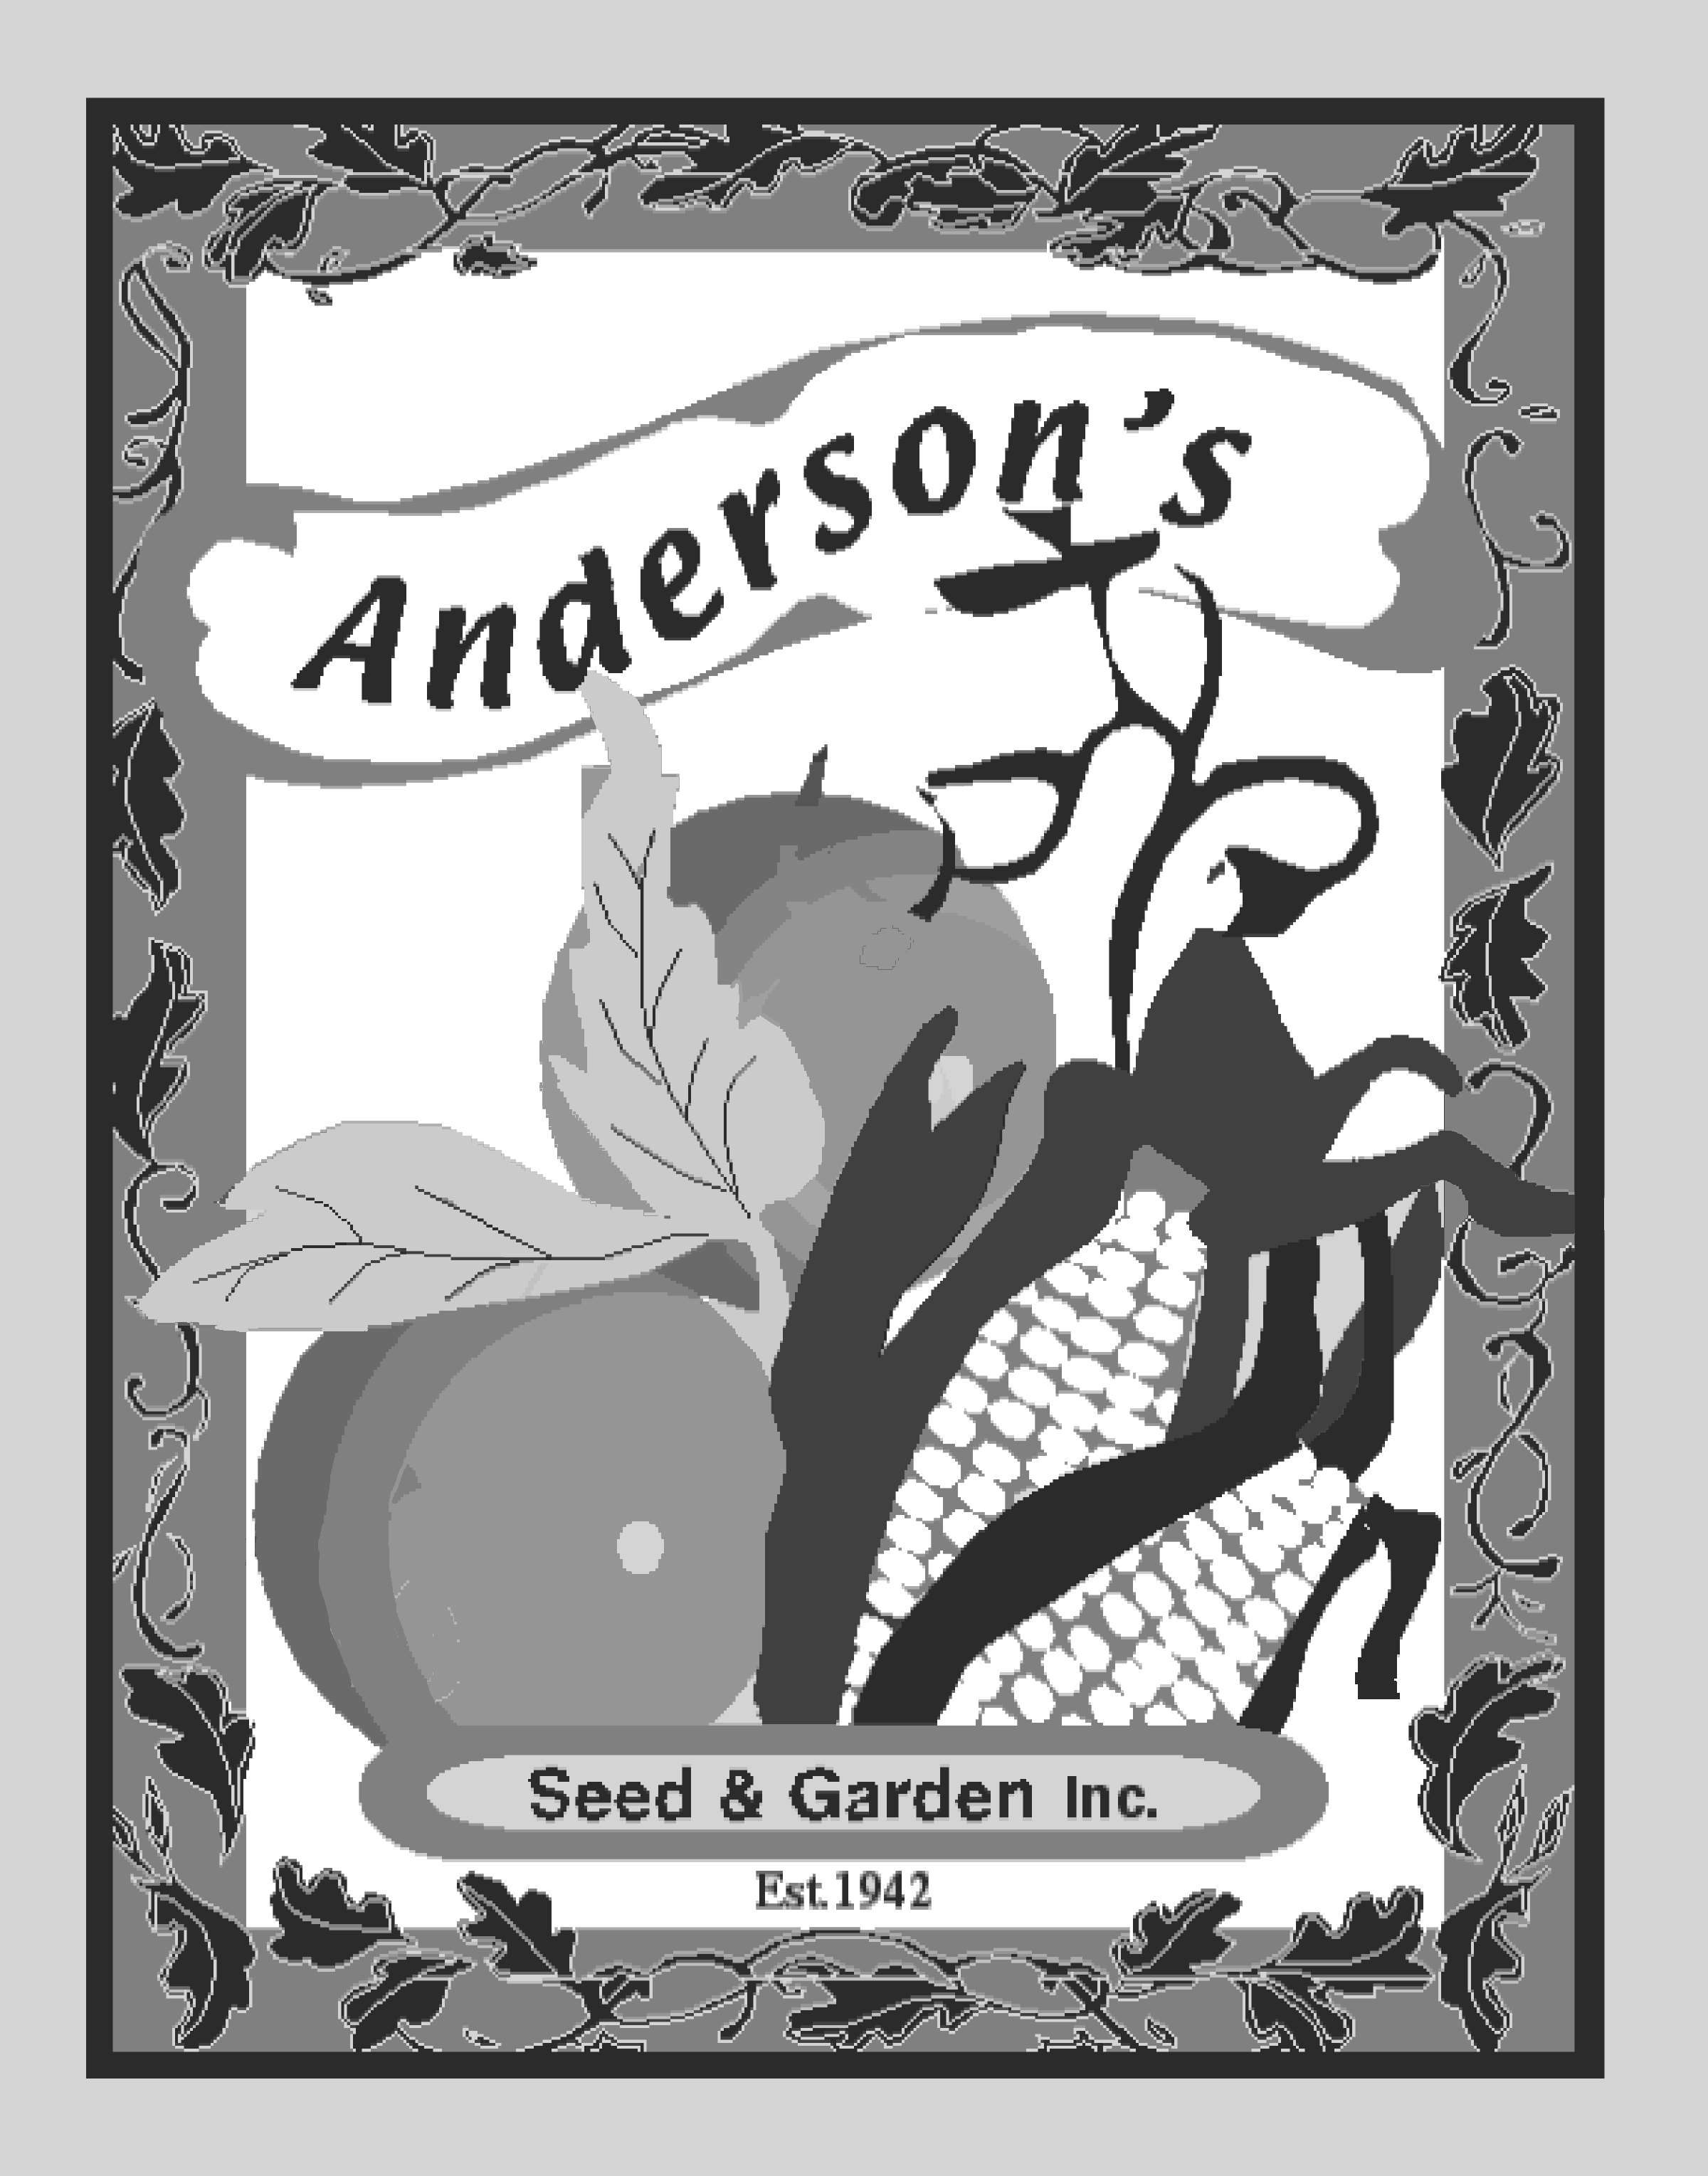 Red Burgermaster Onion Seed 1 oz.